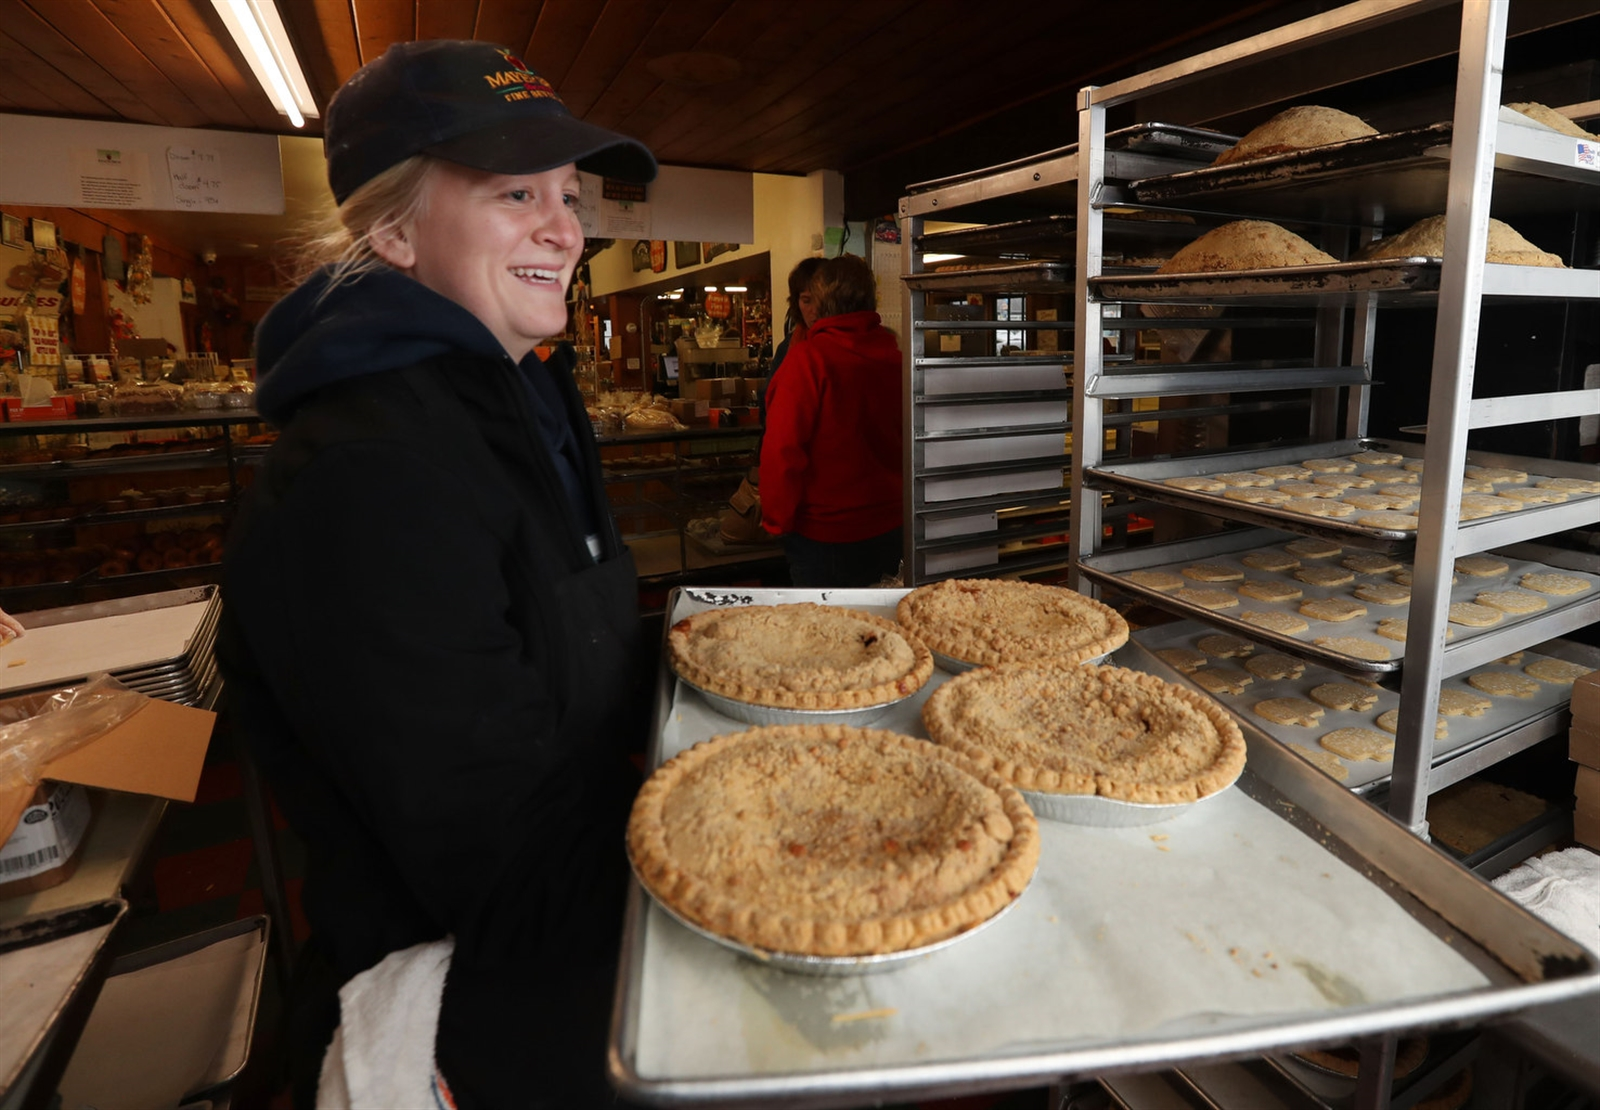 They make so many pies during Thanksgiving that Assistant Manager Amy Bednasz carries pies to an outside container to cool.